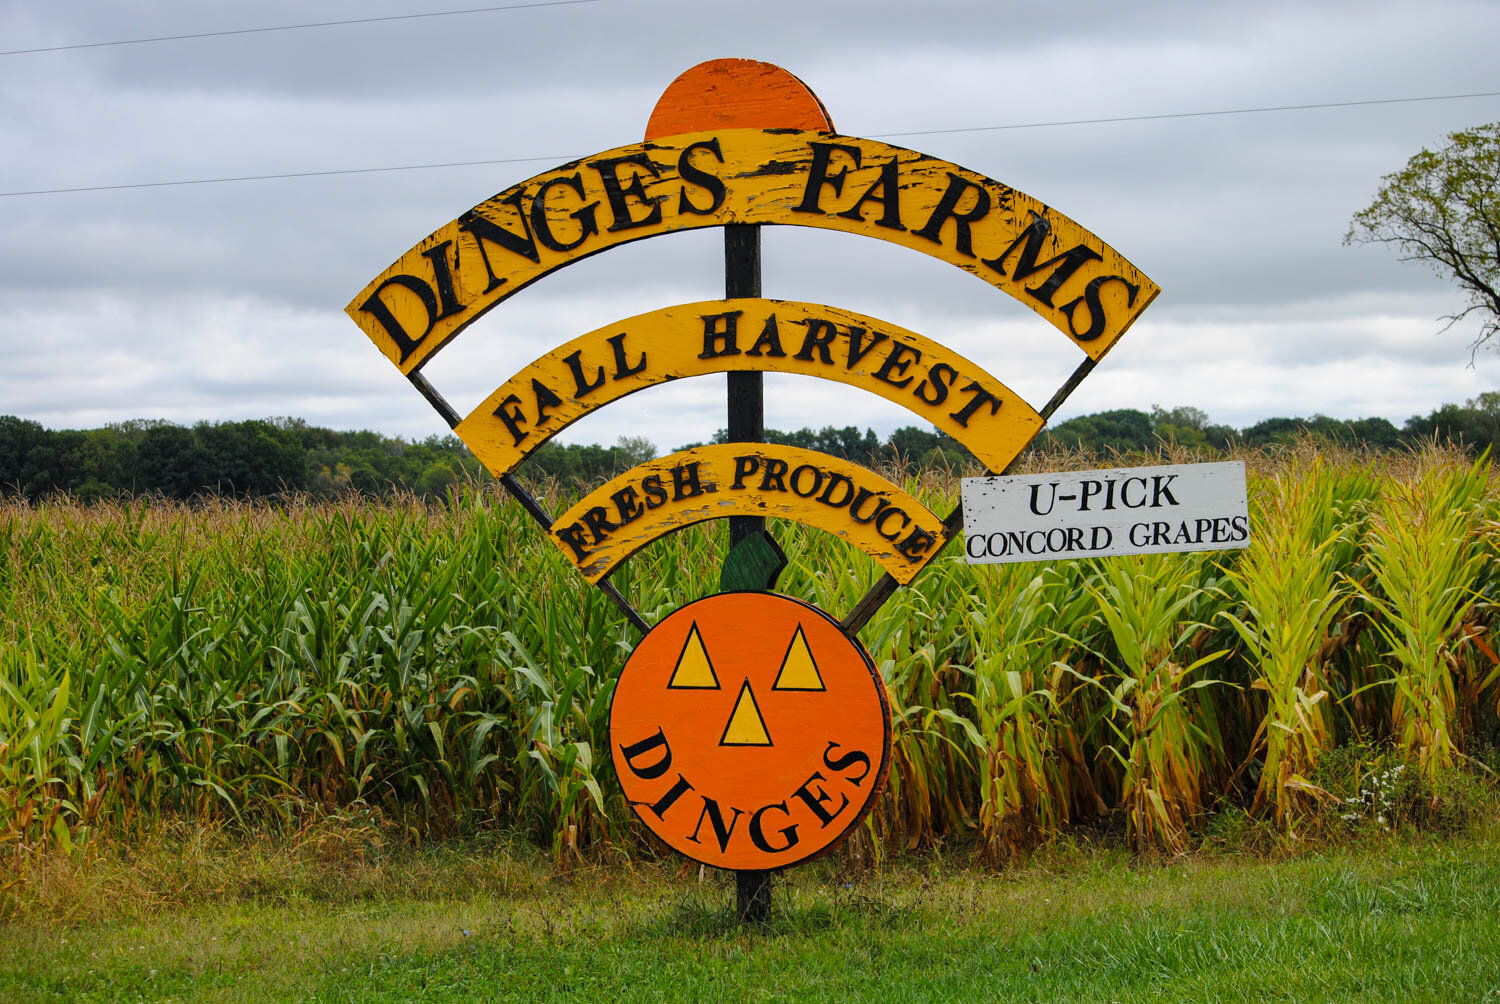 Dinges Farms had really good signage to help visitors find them.